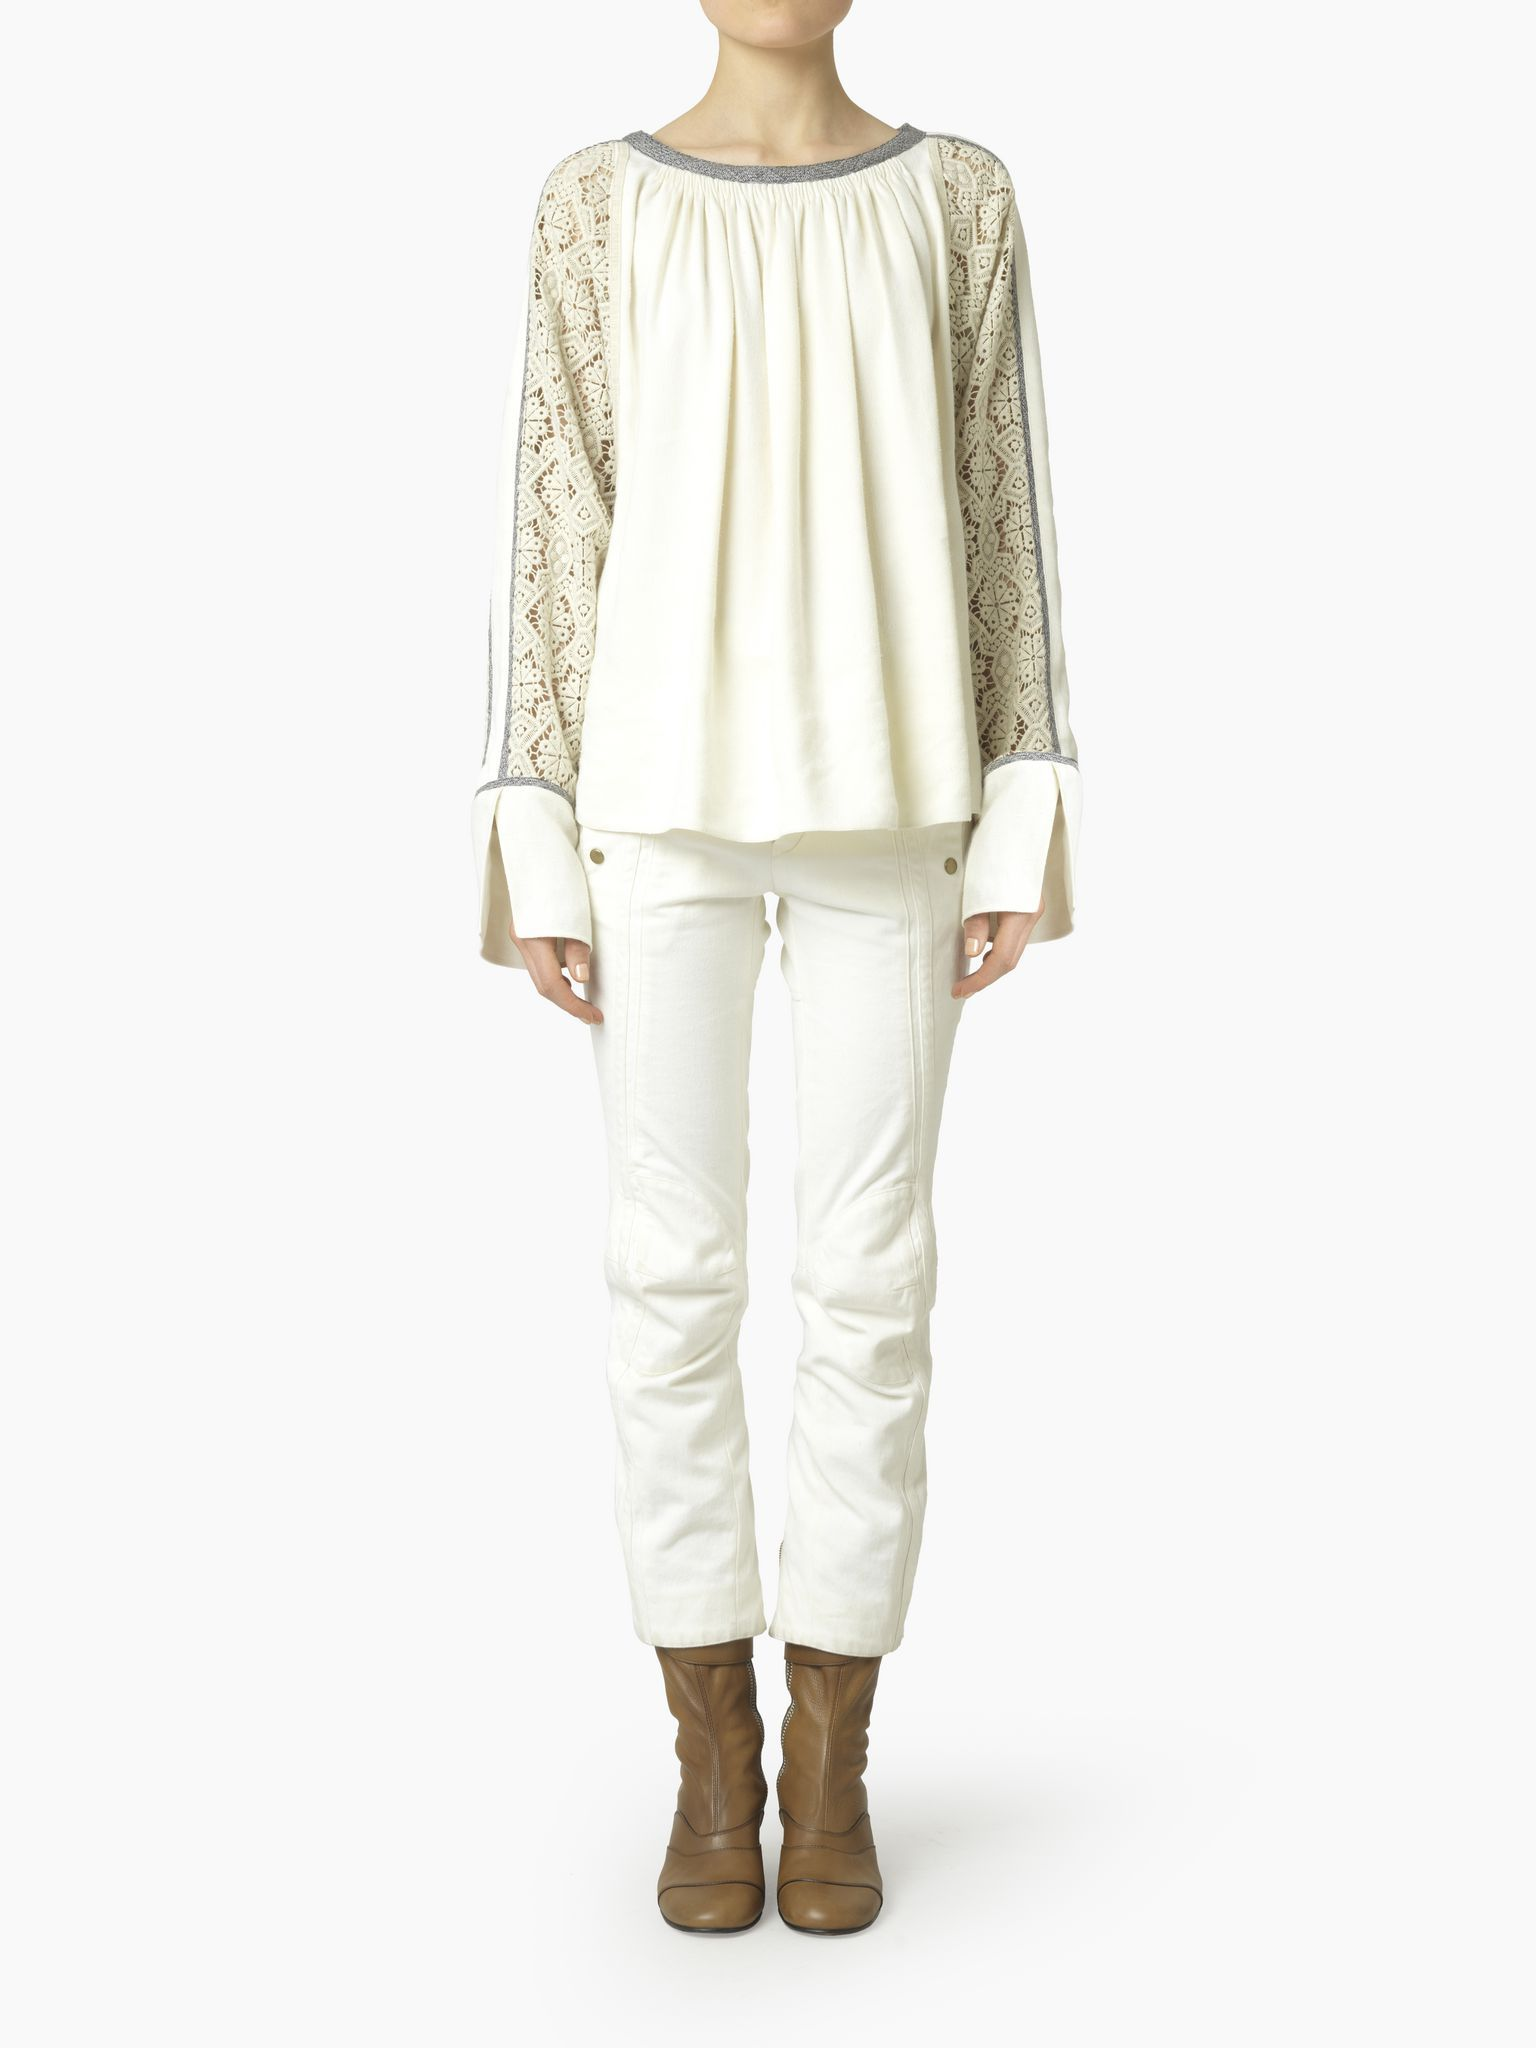 Chloé Guipure Blouse, Women's Ready To Wear | Chloé Official Website | 16HHT3616H039